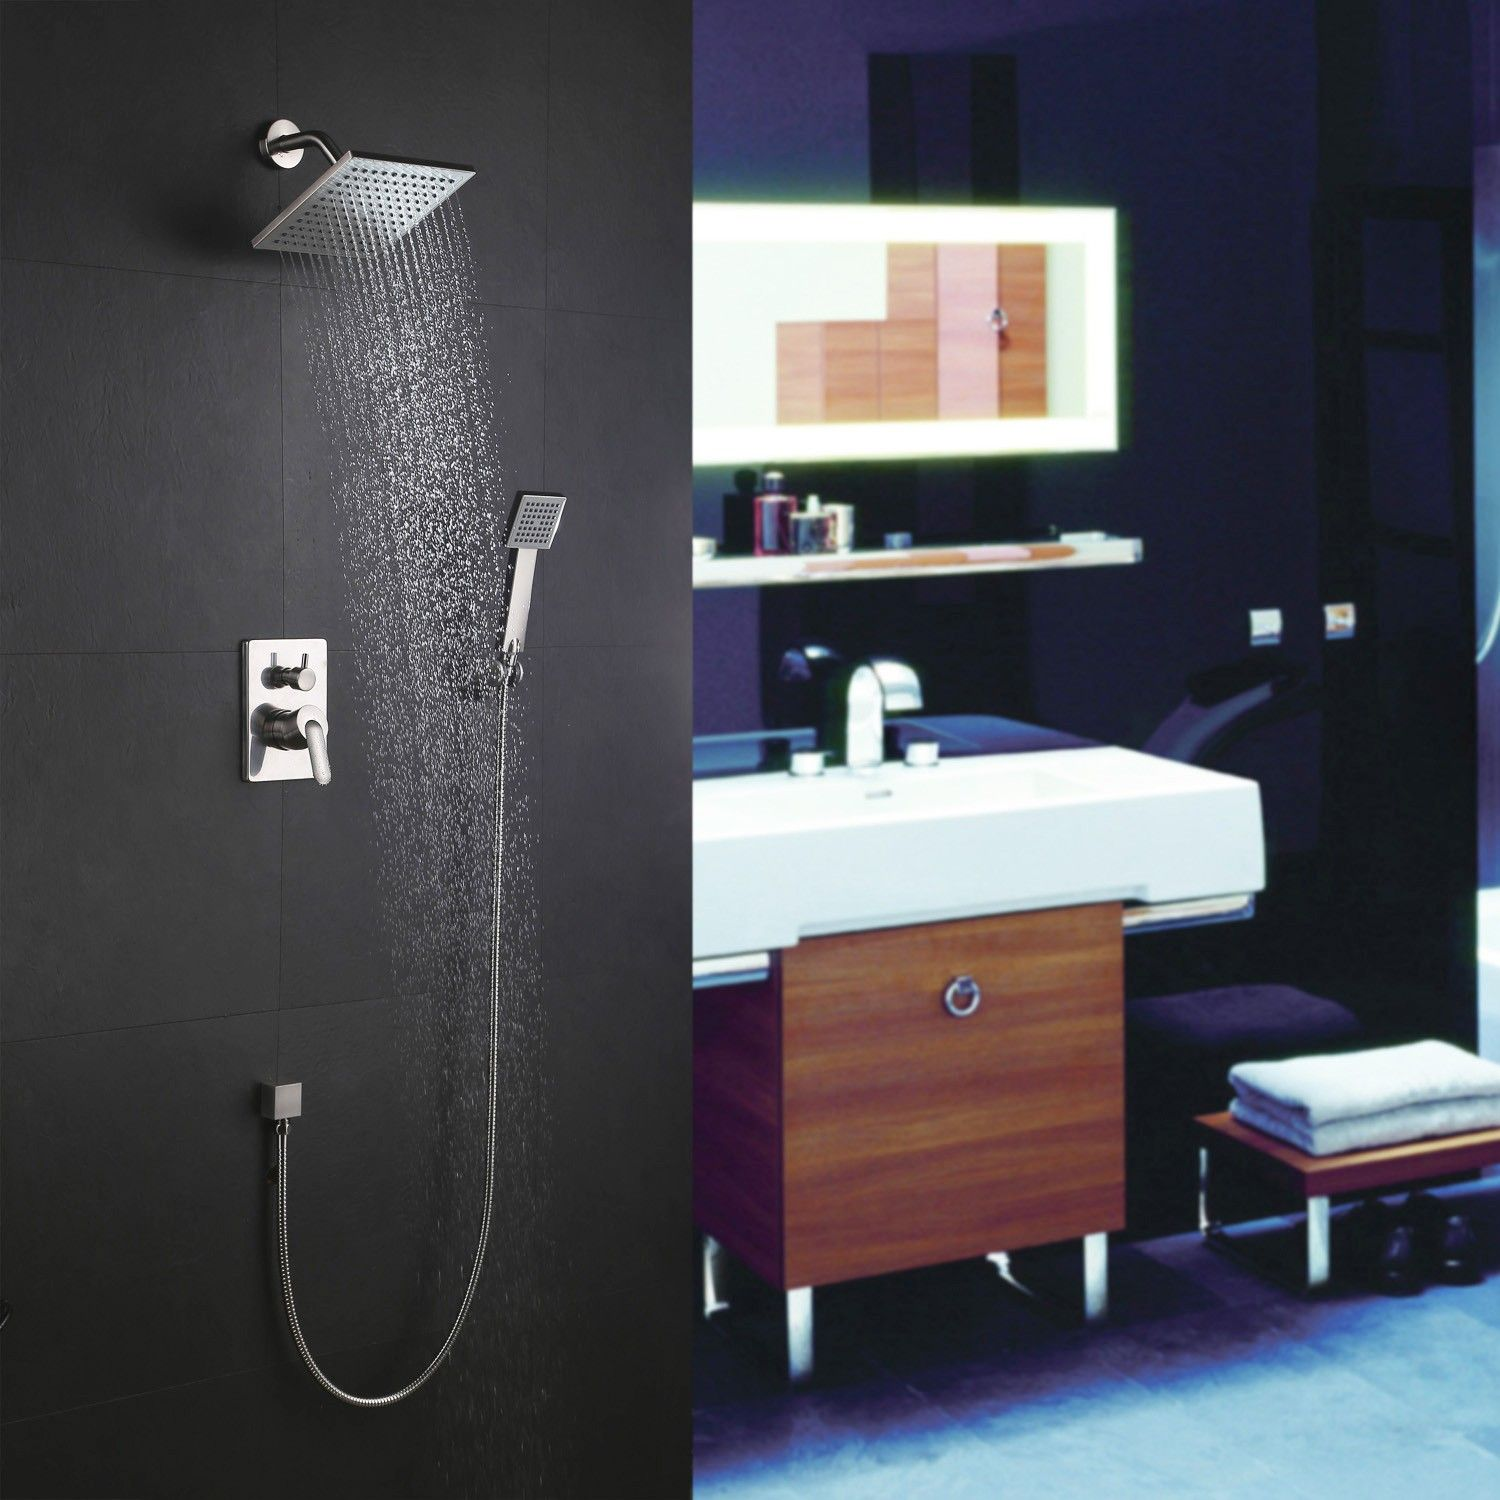 Modern 2 Function Brushed Nickel Shower Set Sold At US$187.99.